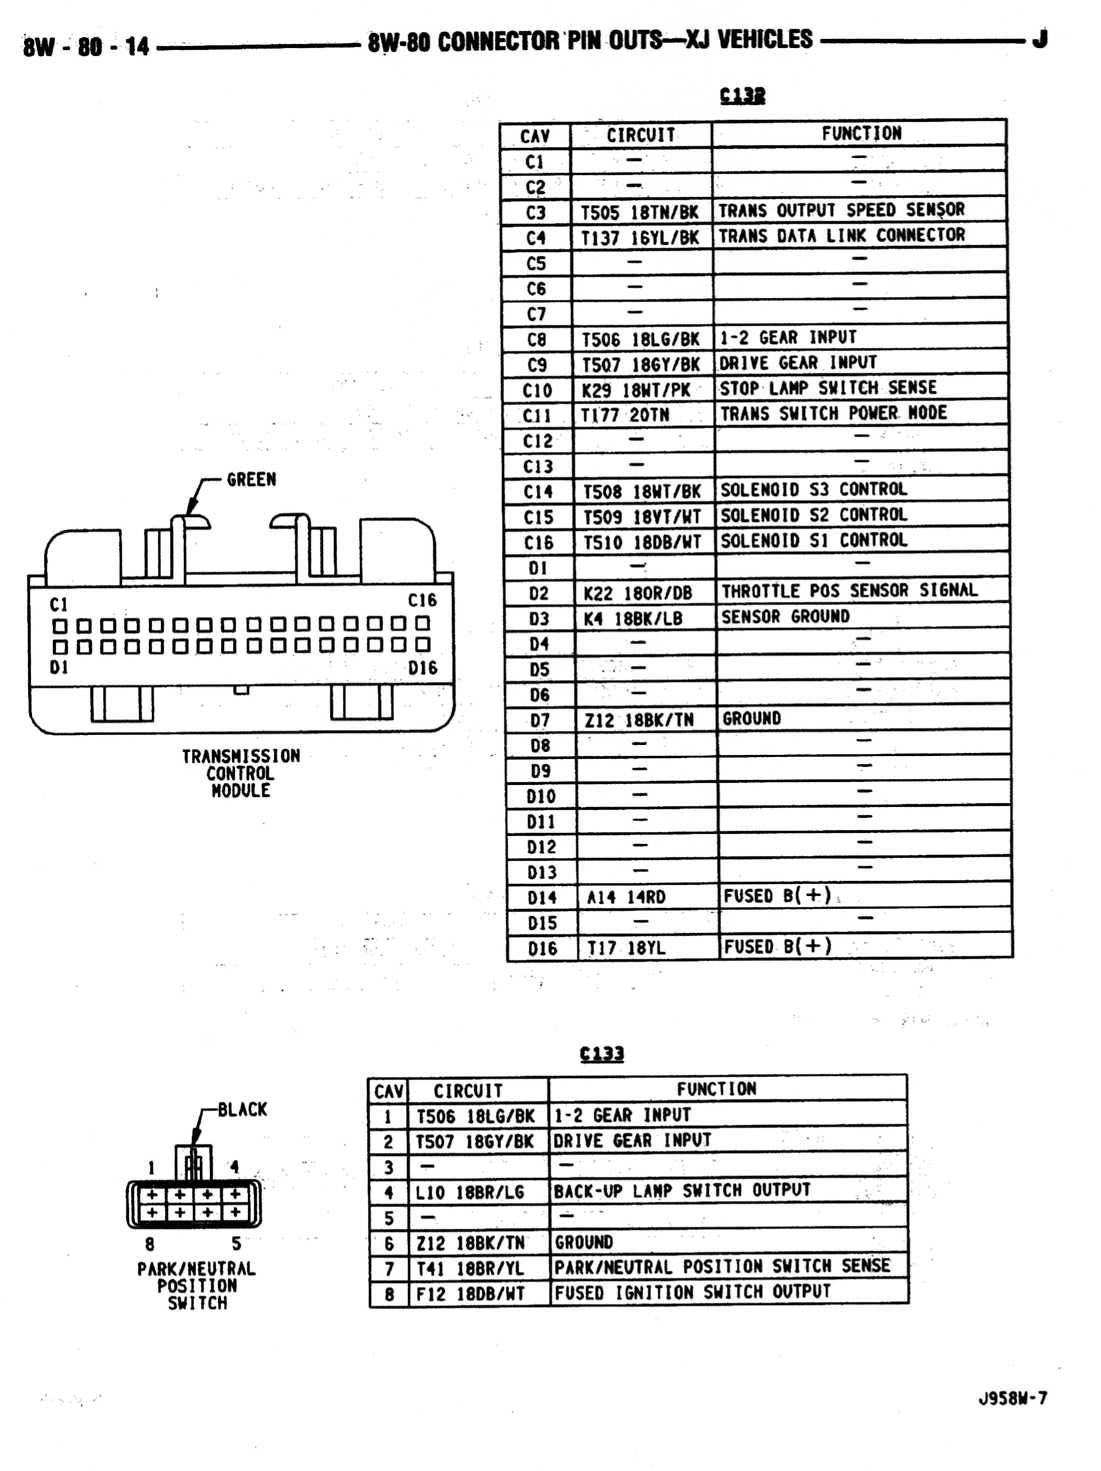 hight resolution of aw4 tcm wiring diagram wiring diagram dat aw4 tcm wiring diagram guide about wiring diagram jeep